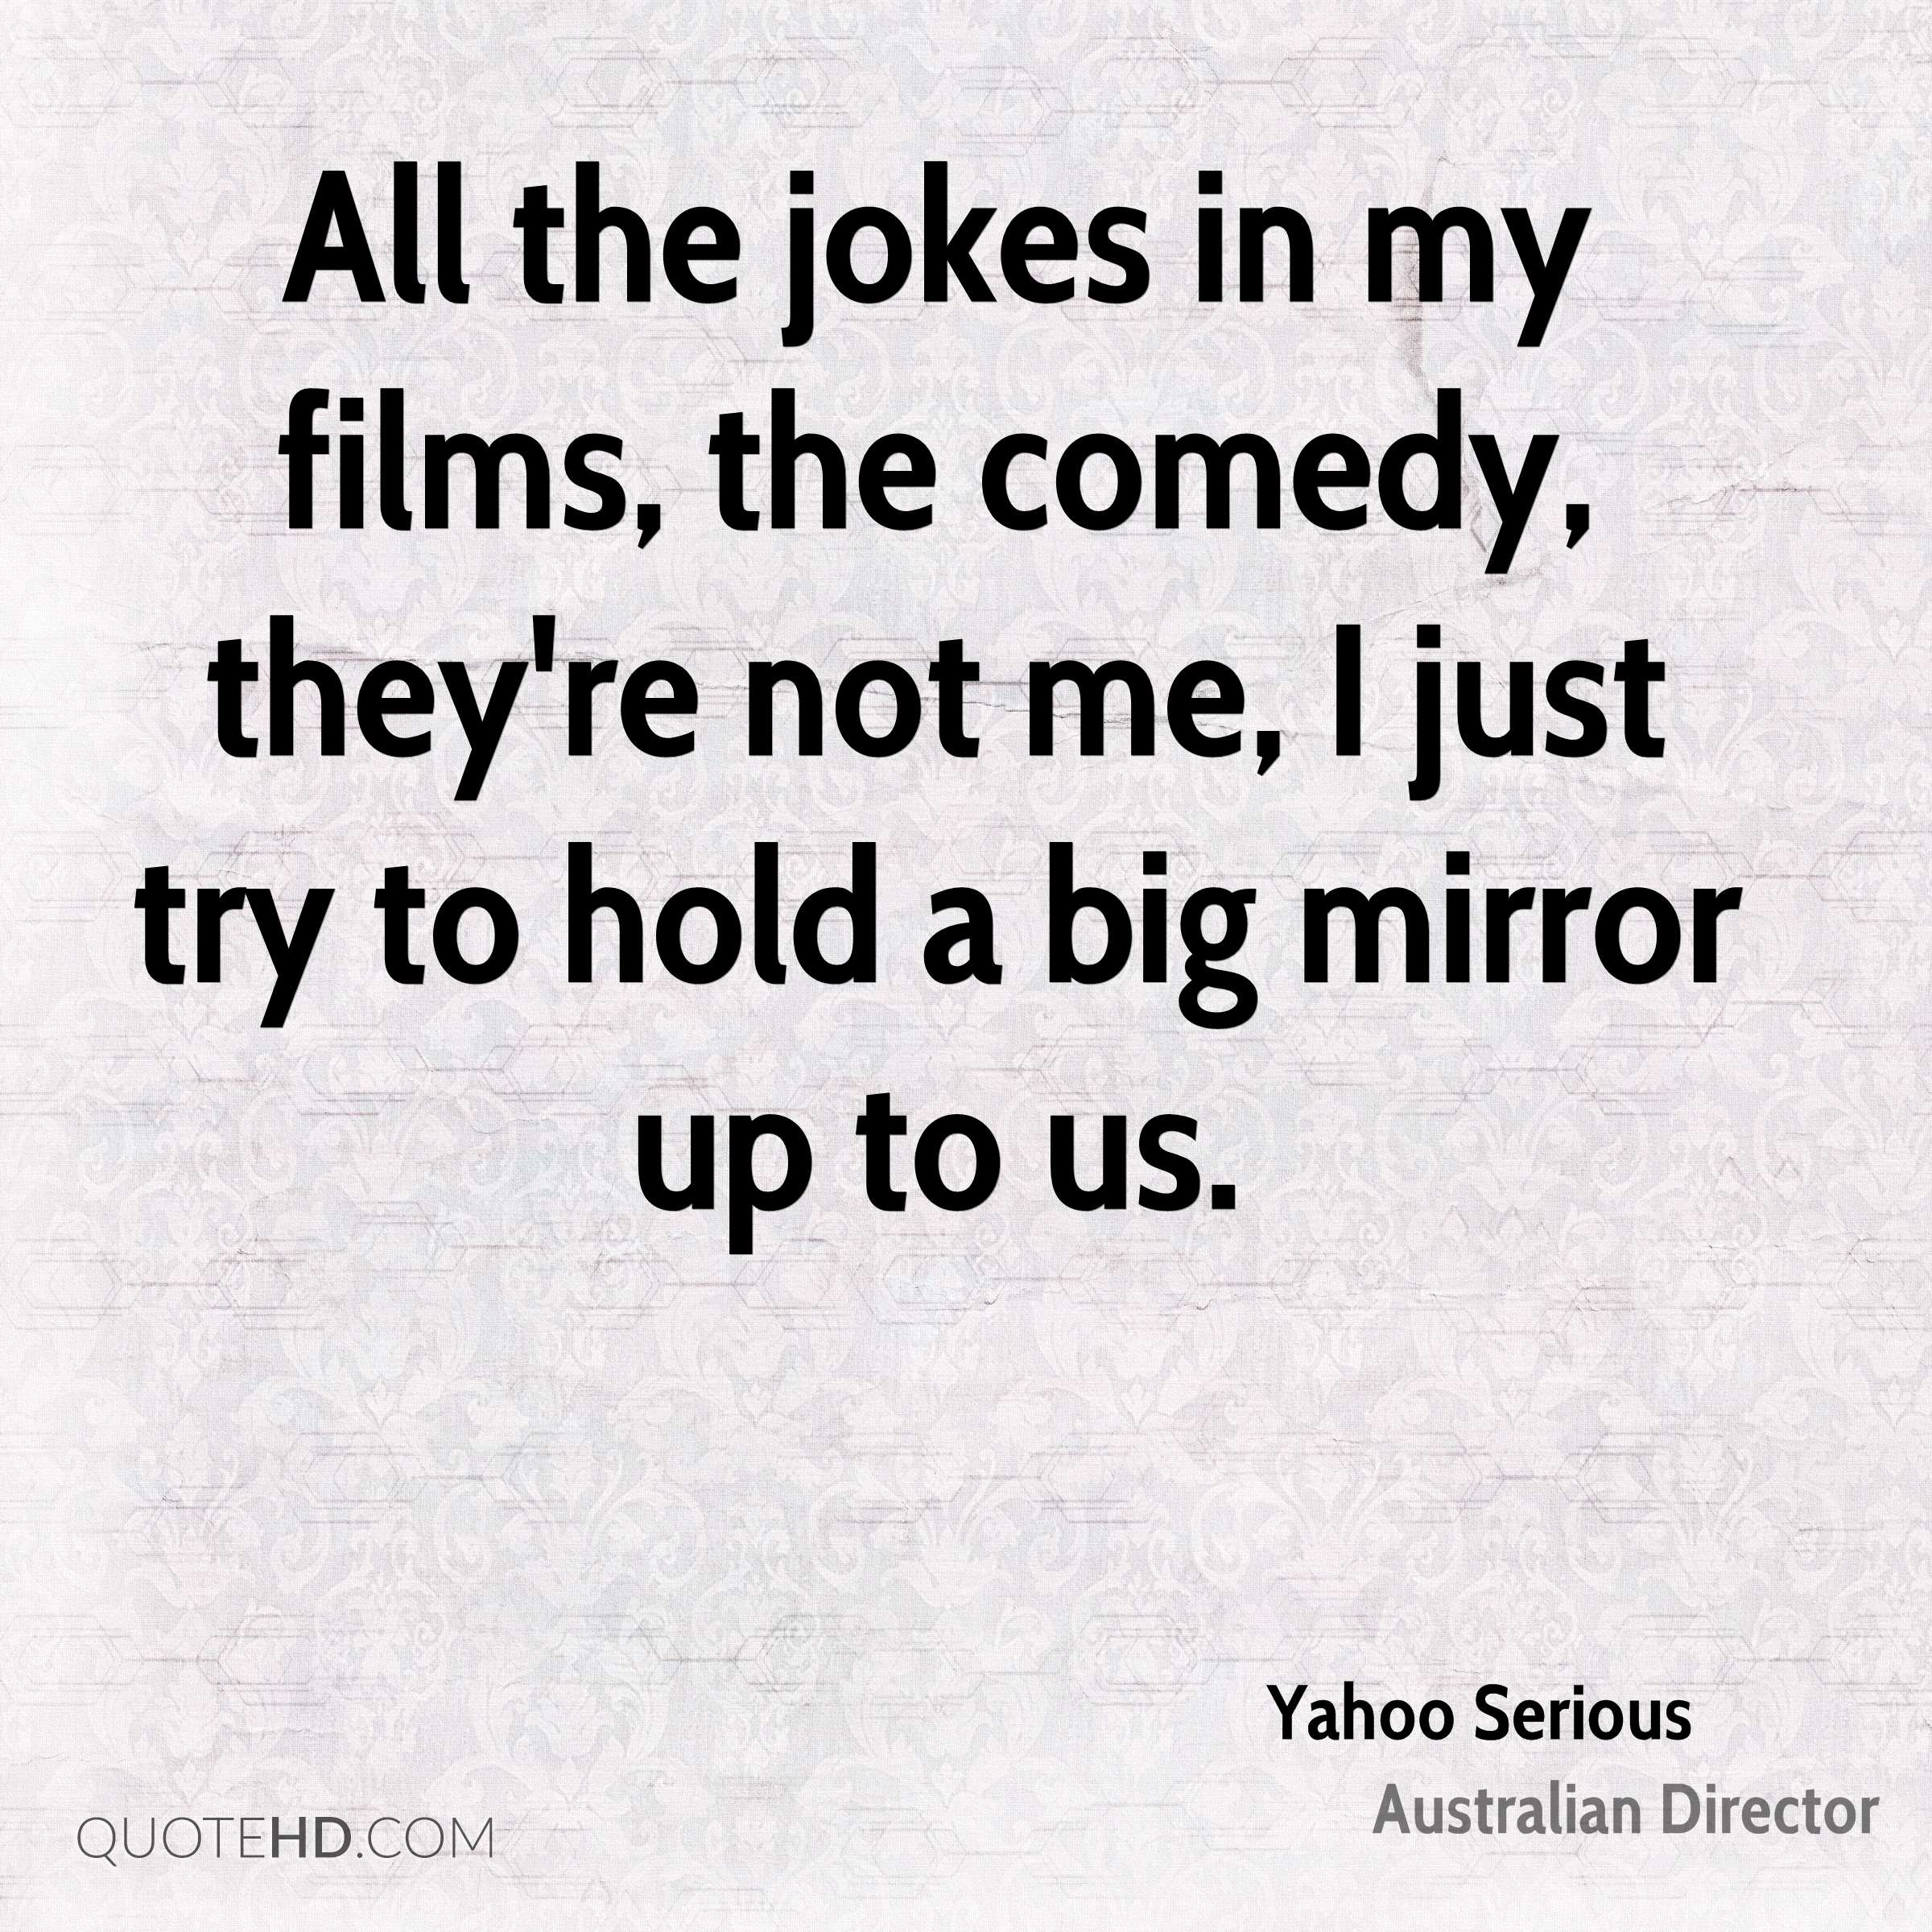 Yahoo serious quotes quotehd for Mirror jokes